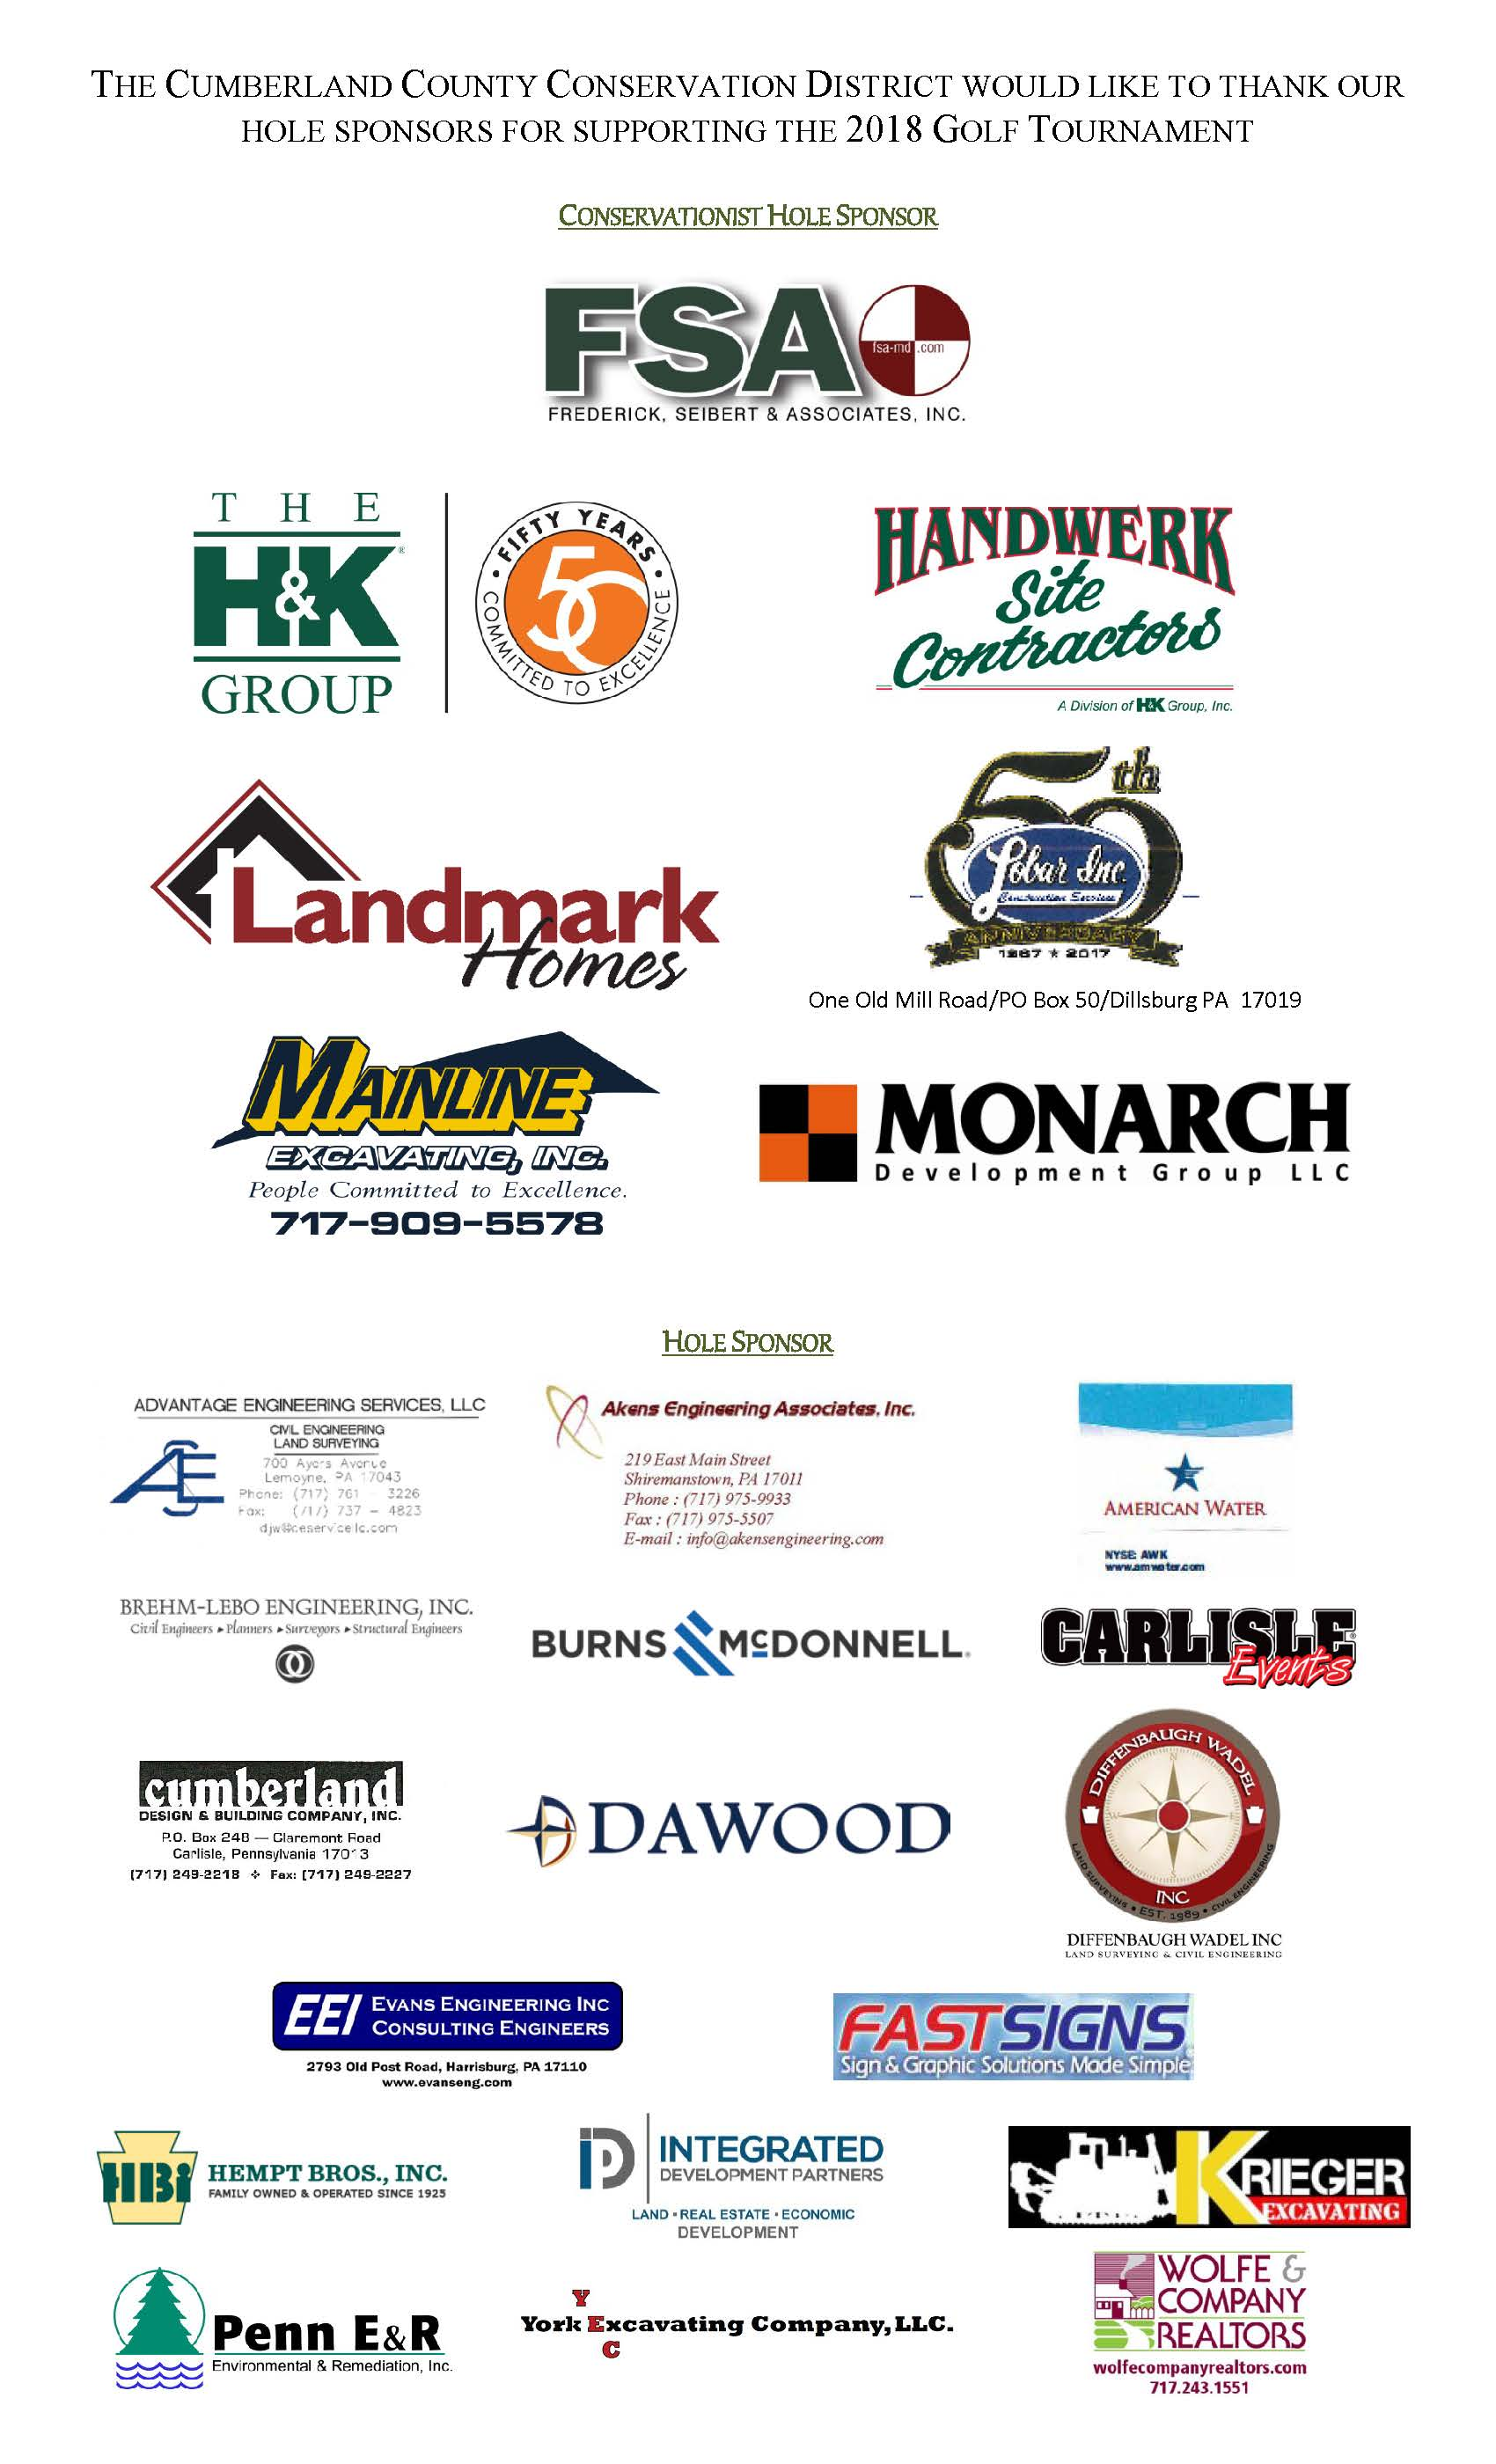 List of 2018 golf outing hole sponsors